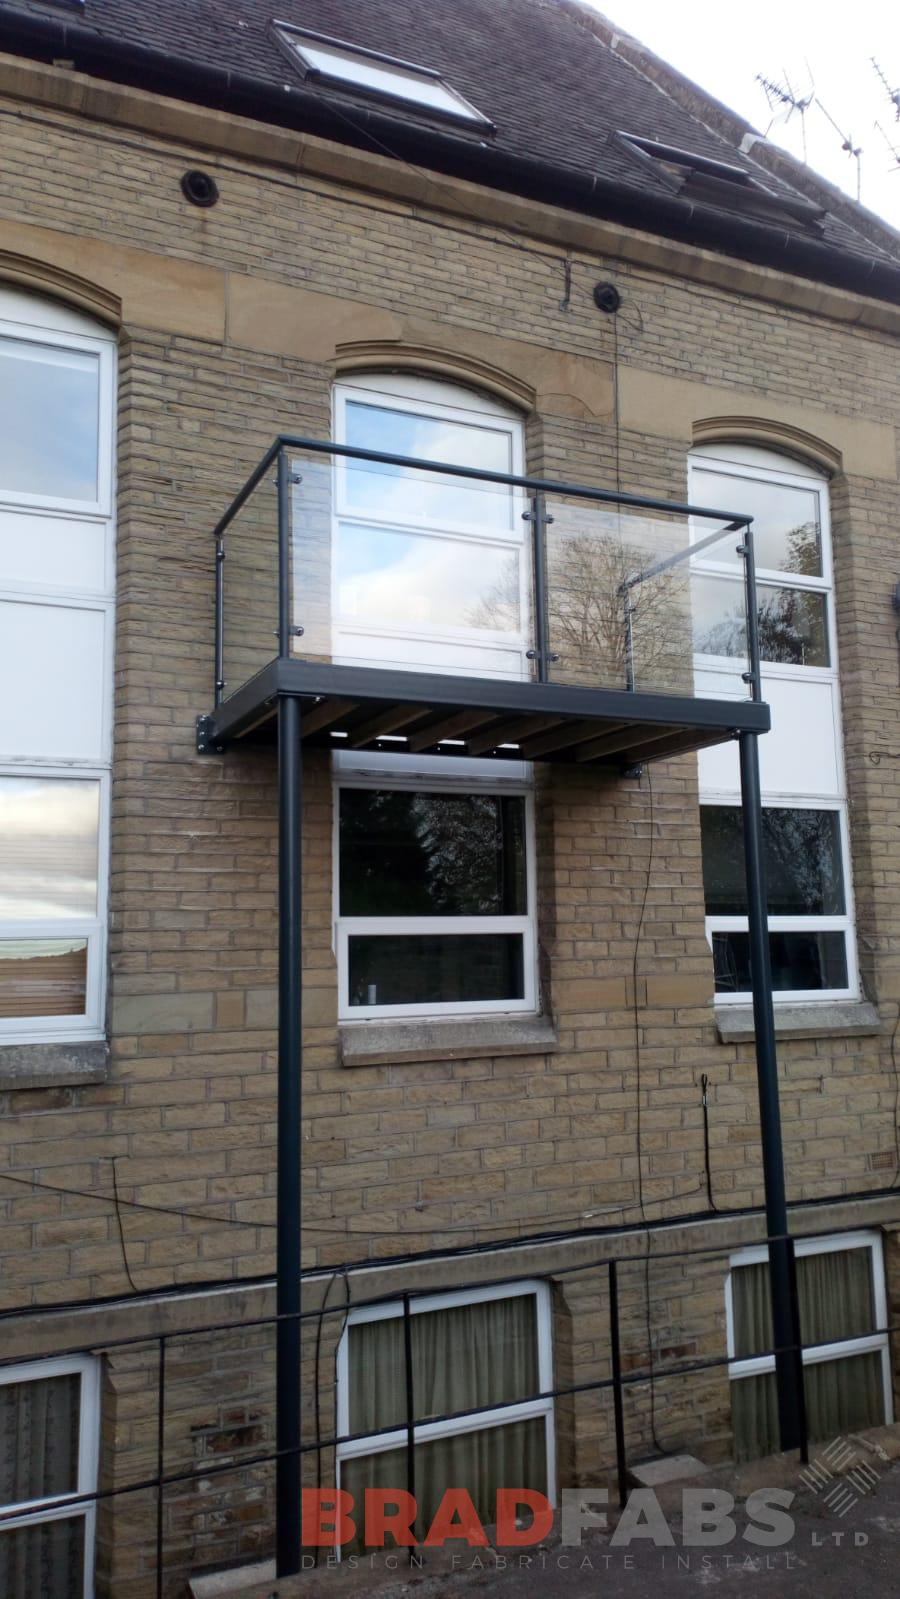 Balcony, Mild steel, galvanised, powder coated, balcony with legs, composite decked floor, glass balustrade